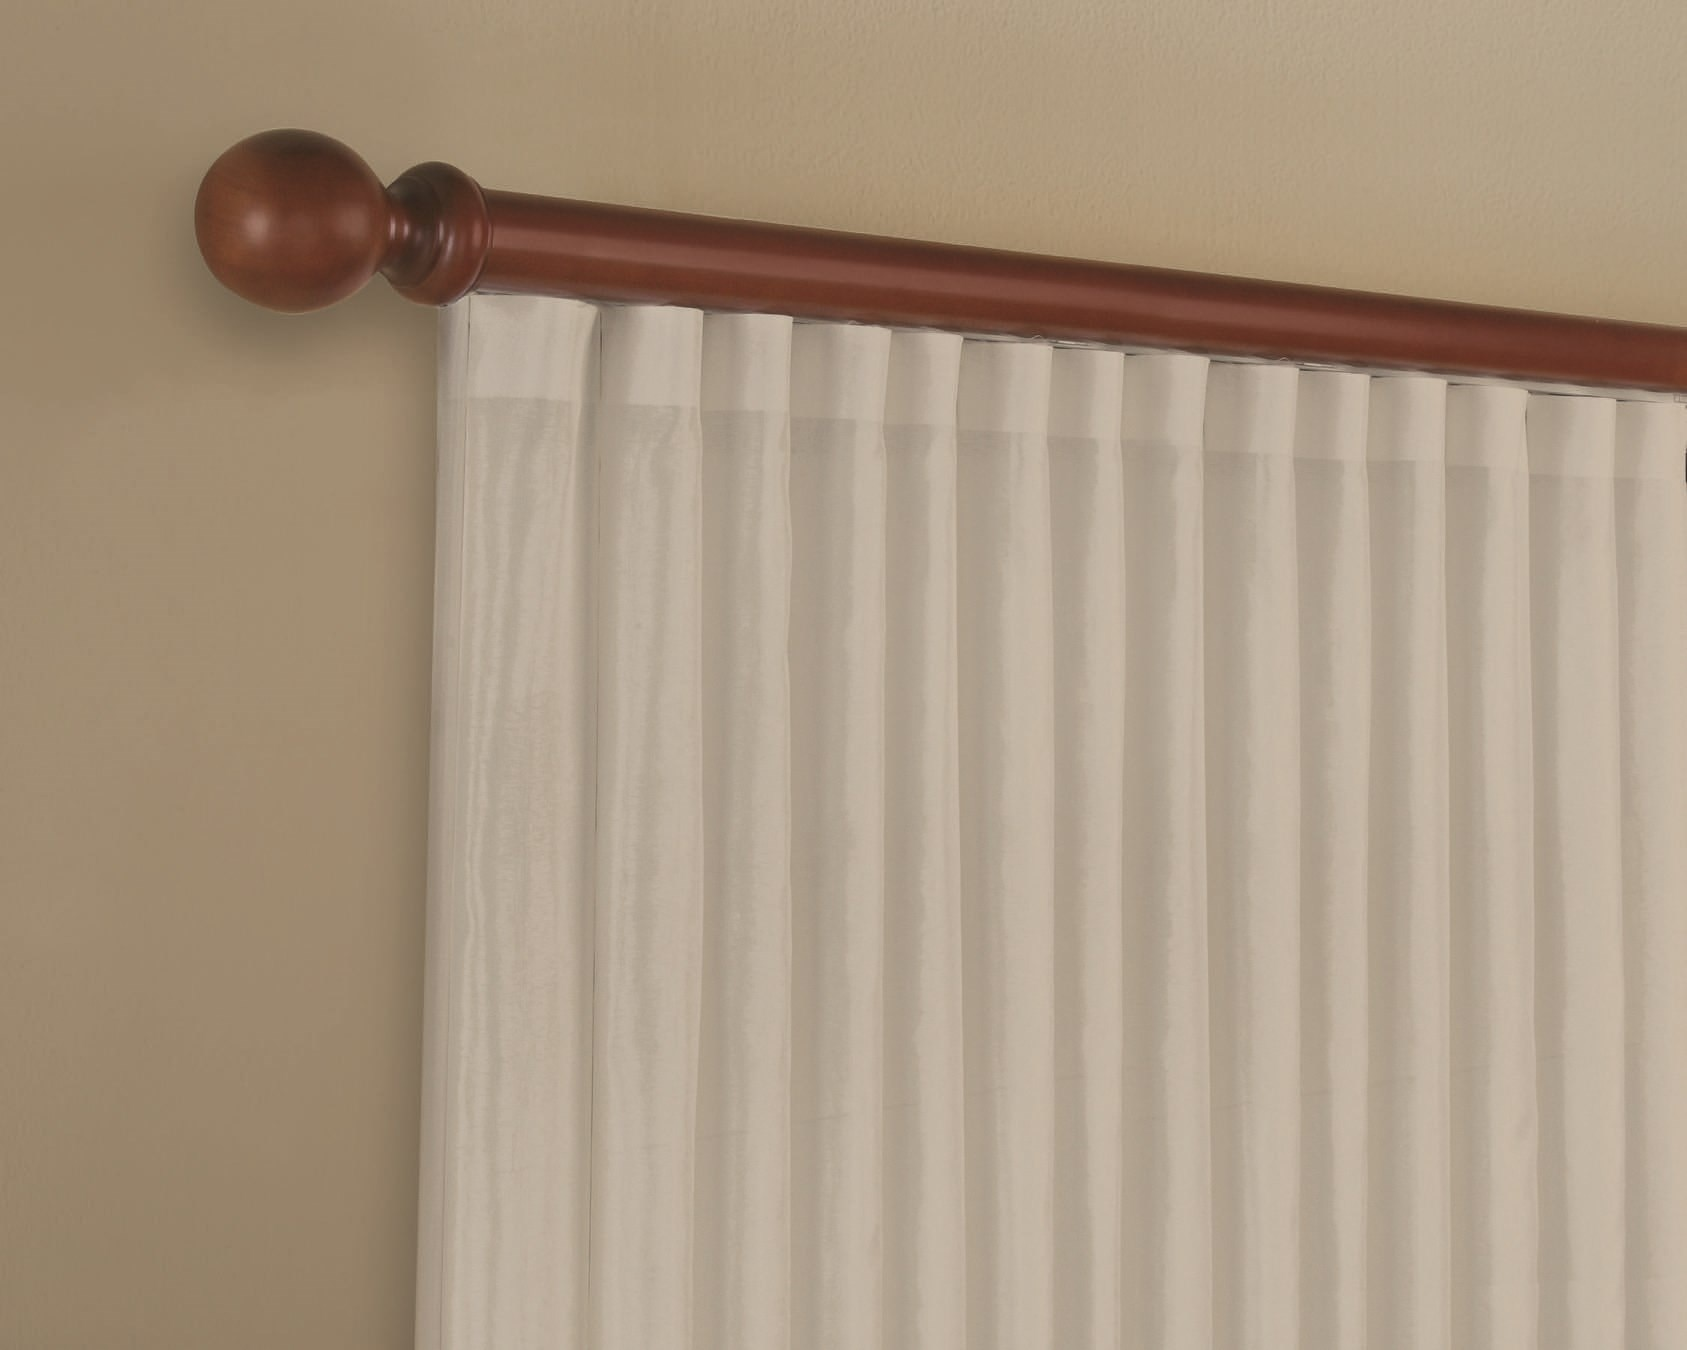 505224 softverticals-estateballvalance-detail.jpg